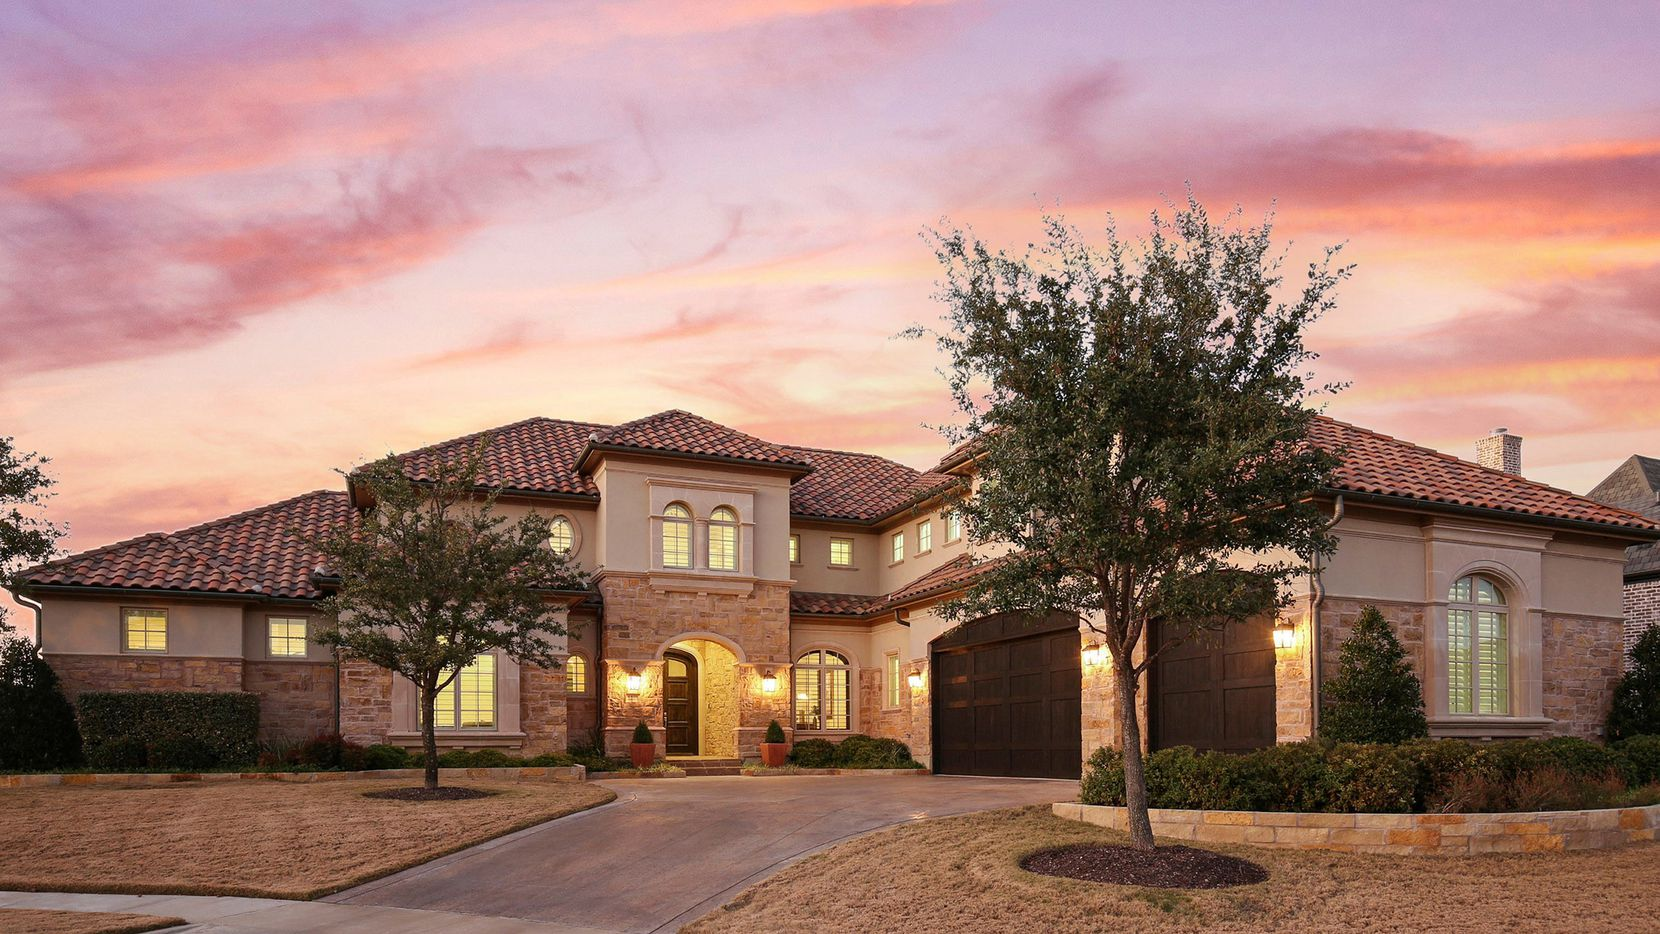 The Tuscan-inspired villa at 6805 Amaretto Court is in Normandy Estates, located in far northwest Plano.